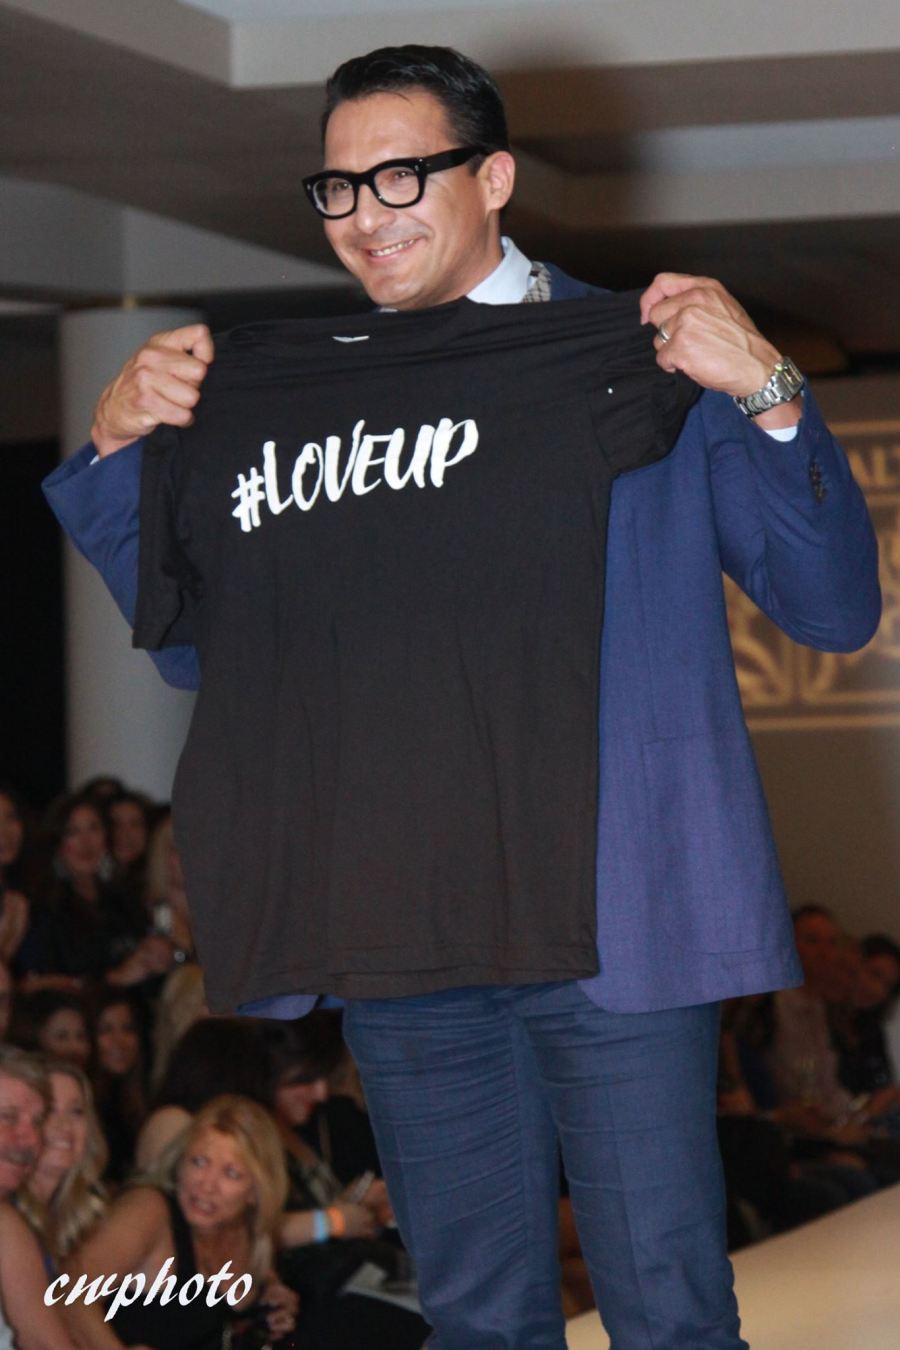 Runway Walk & #LoveUp shirt. A finale on my walk to show my support for this incredible initiative.